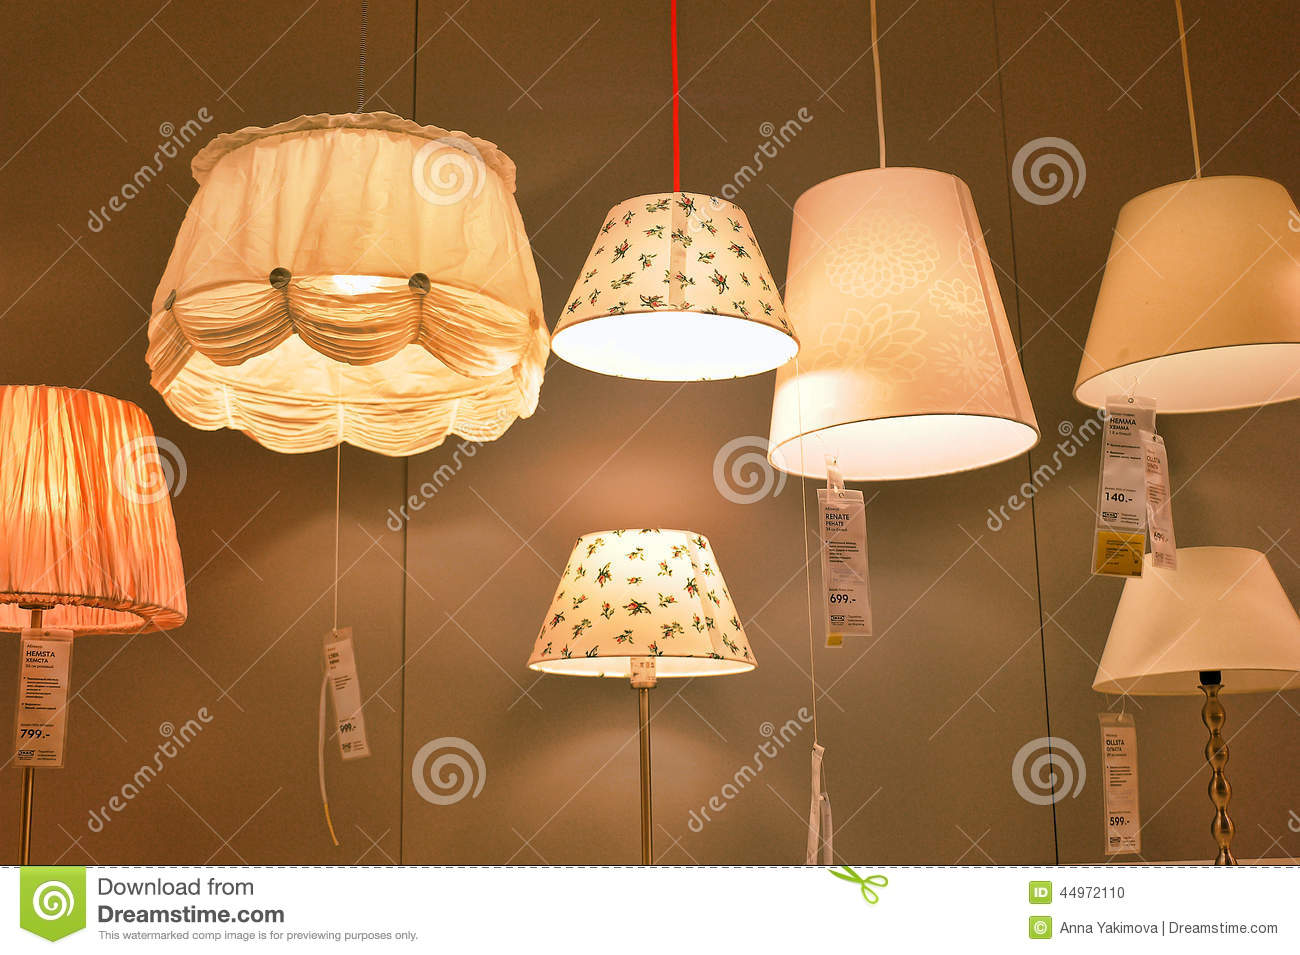 Lamps And Lighting >> Lamps And Lighting Fixtures In The Store Editorial Image Image Of